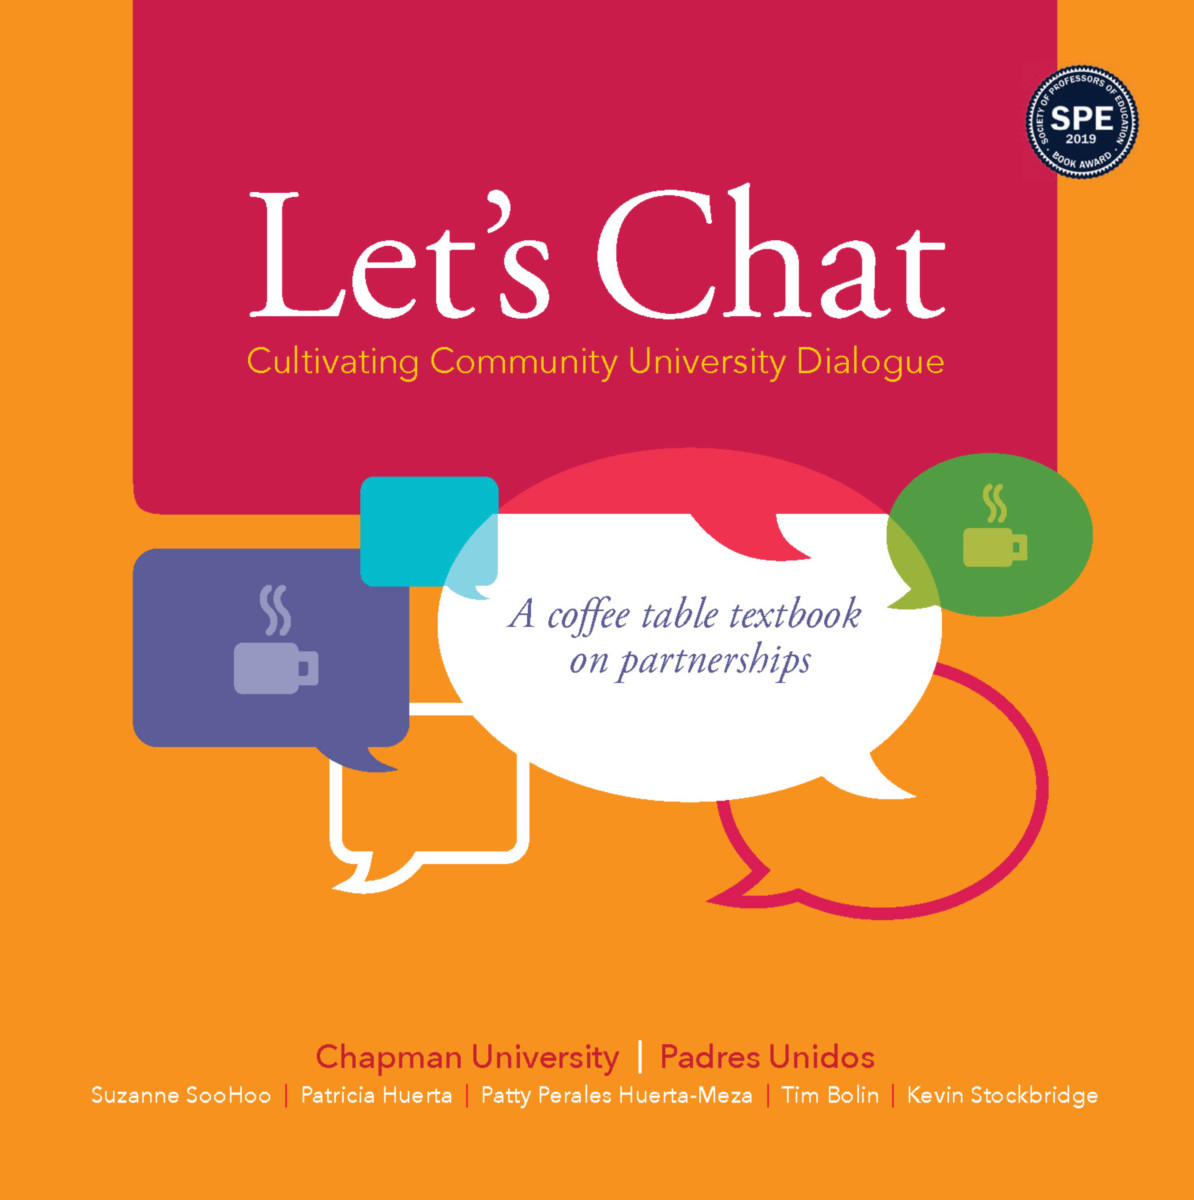 Let's Chat—Cultivating Community University Dialogue